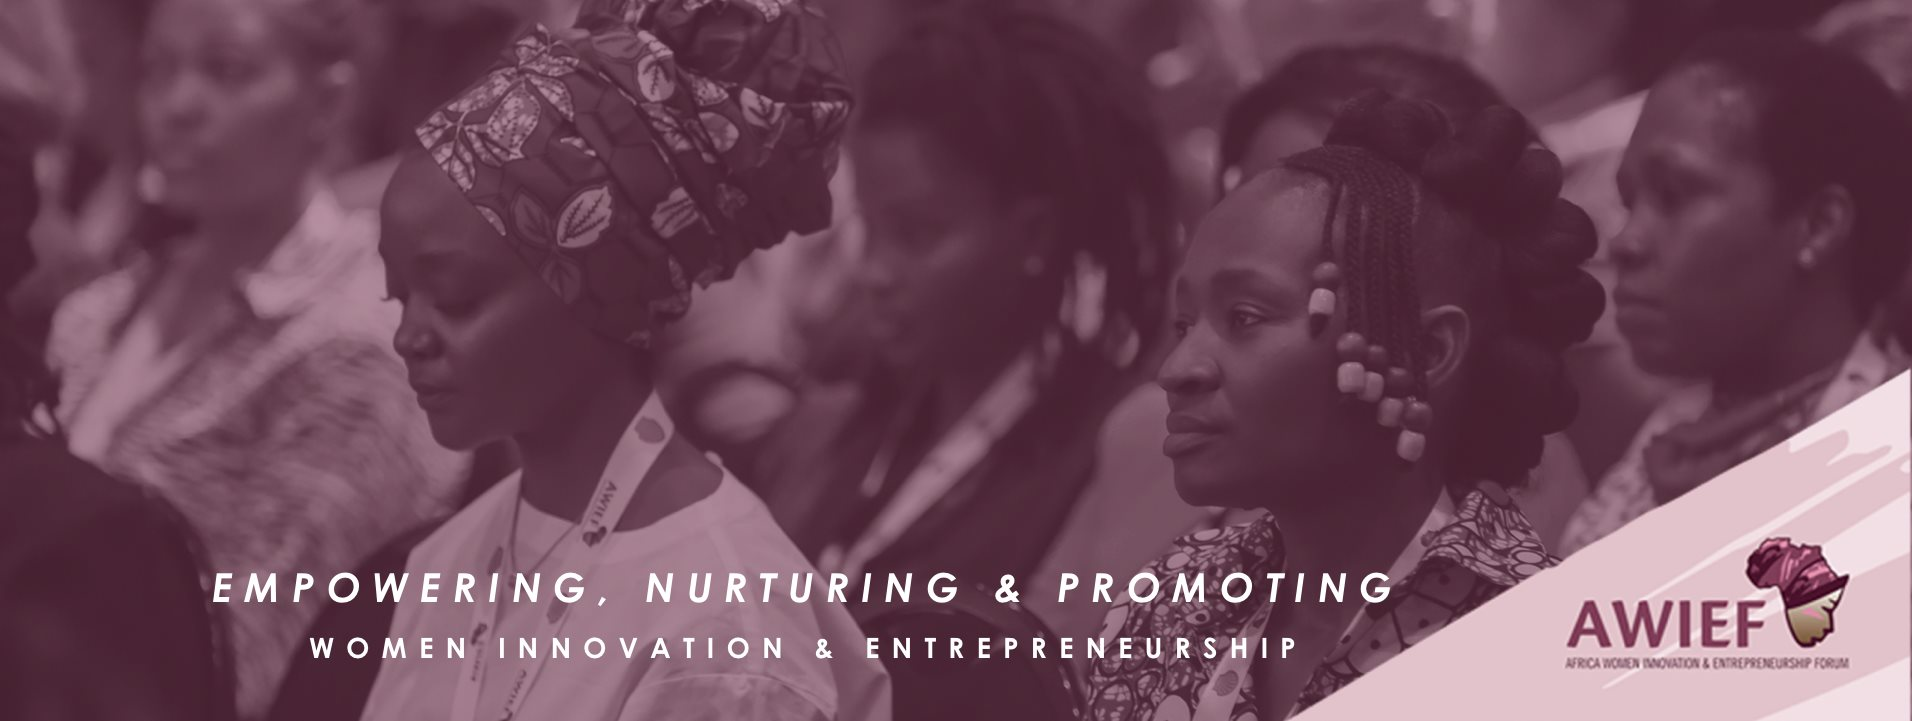 Africa Women Innovation and Entrepreneurship Forum (AWIEF) Growth Accelerator